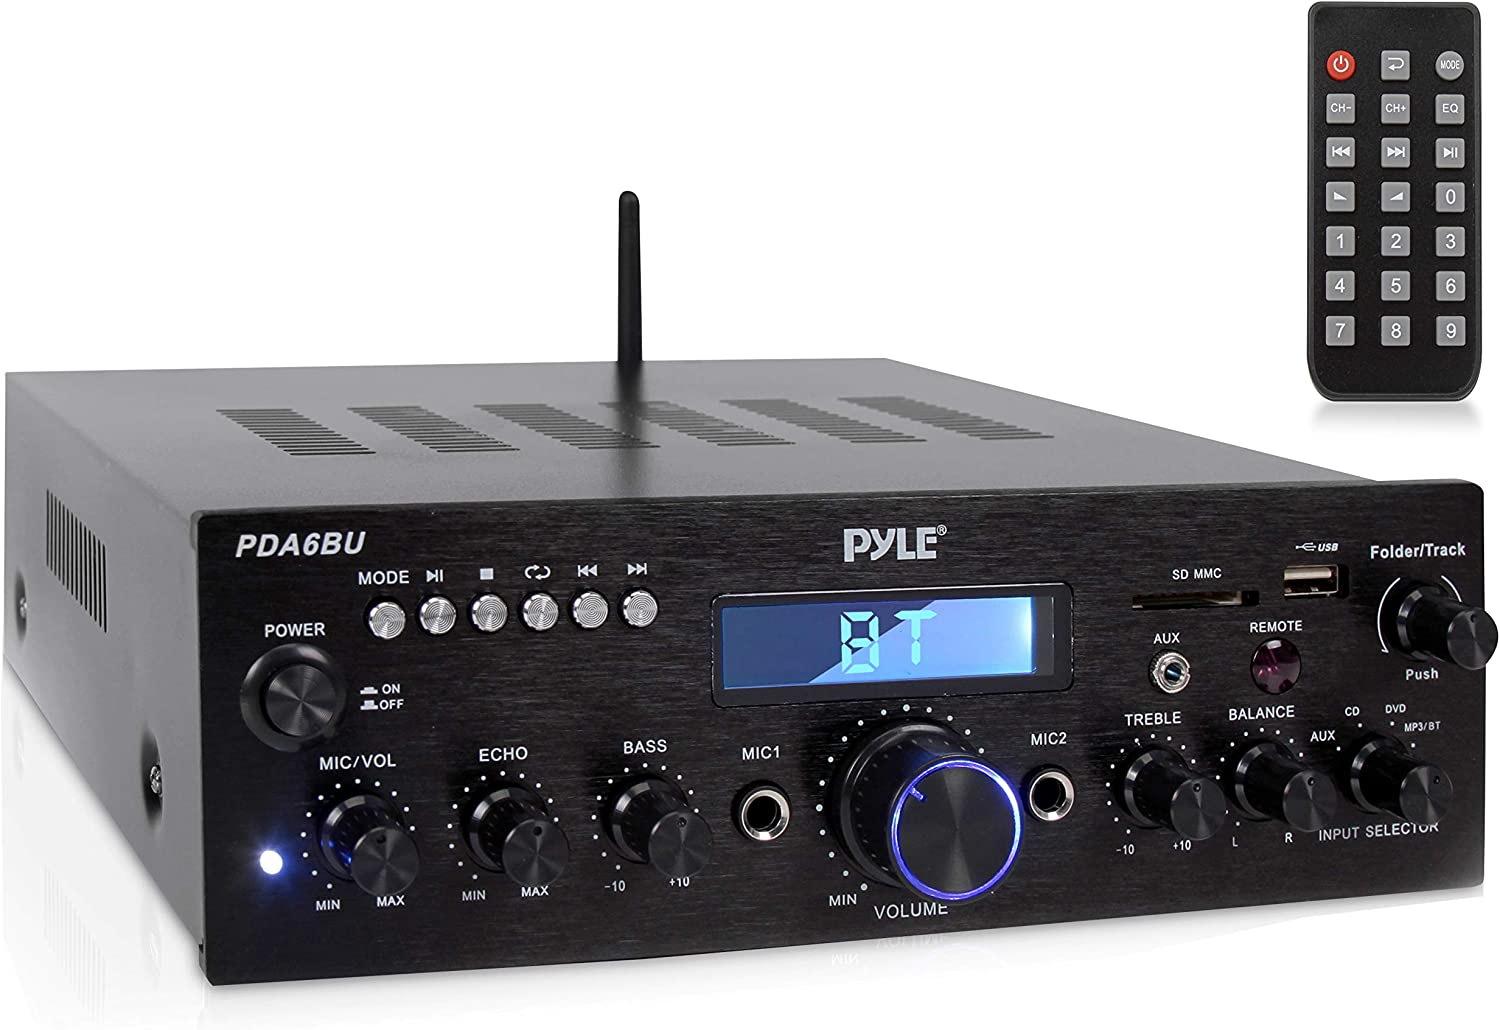 4. Pyle Bluetooth Stereo Amplifier Receiver